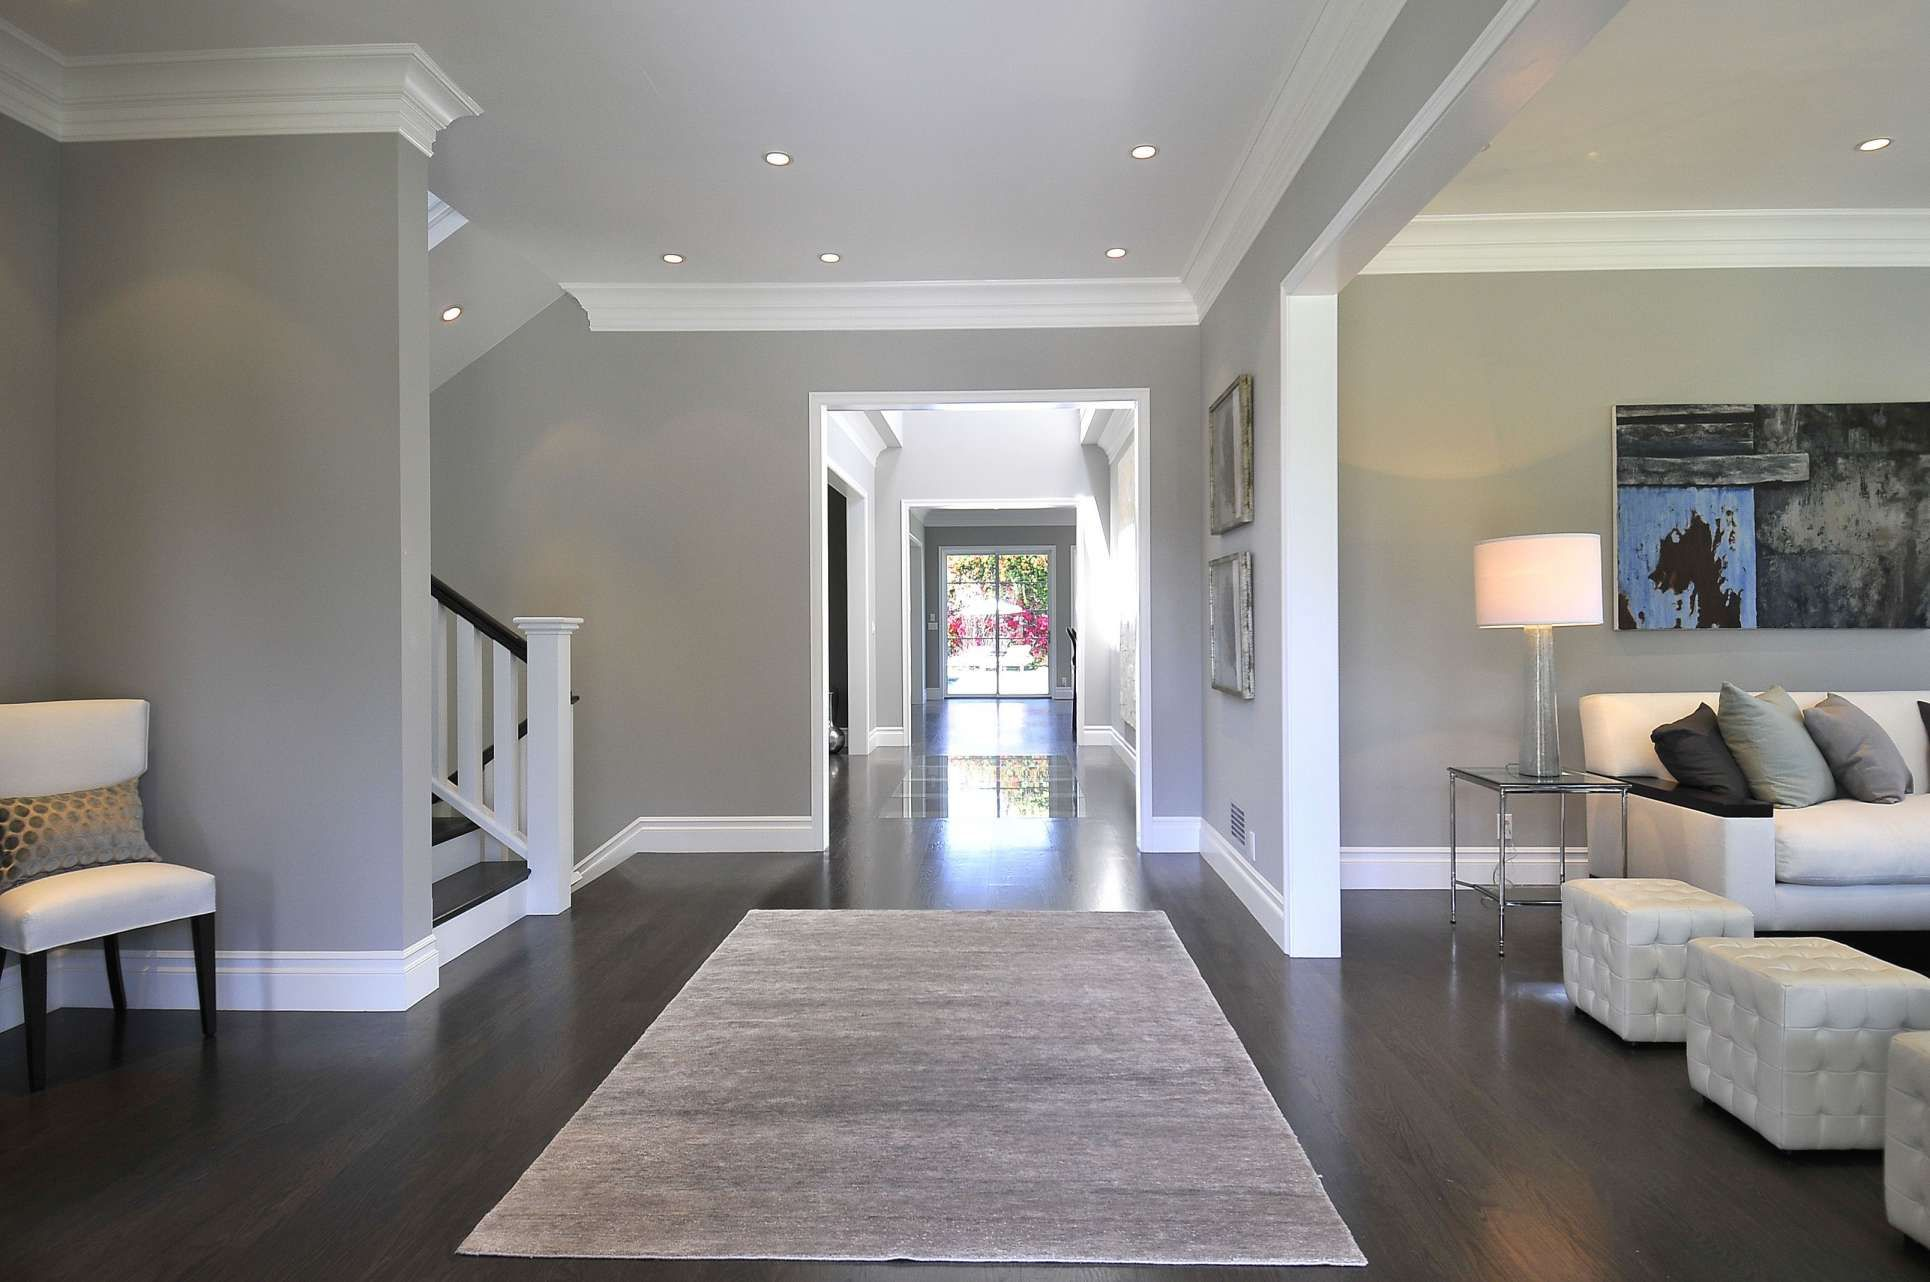 Wall Paint Colors For Dark Wood Floors and Gray Walls With